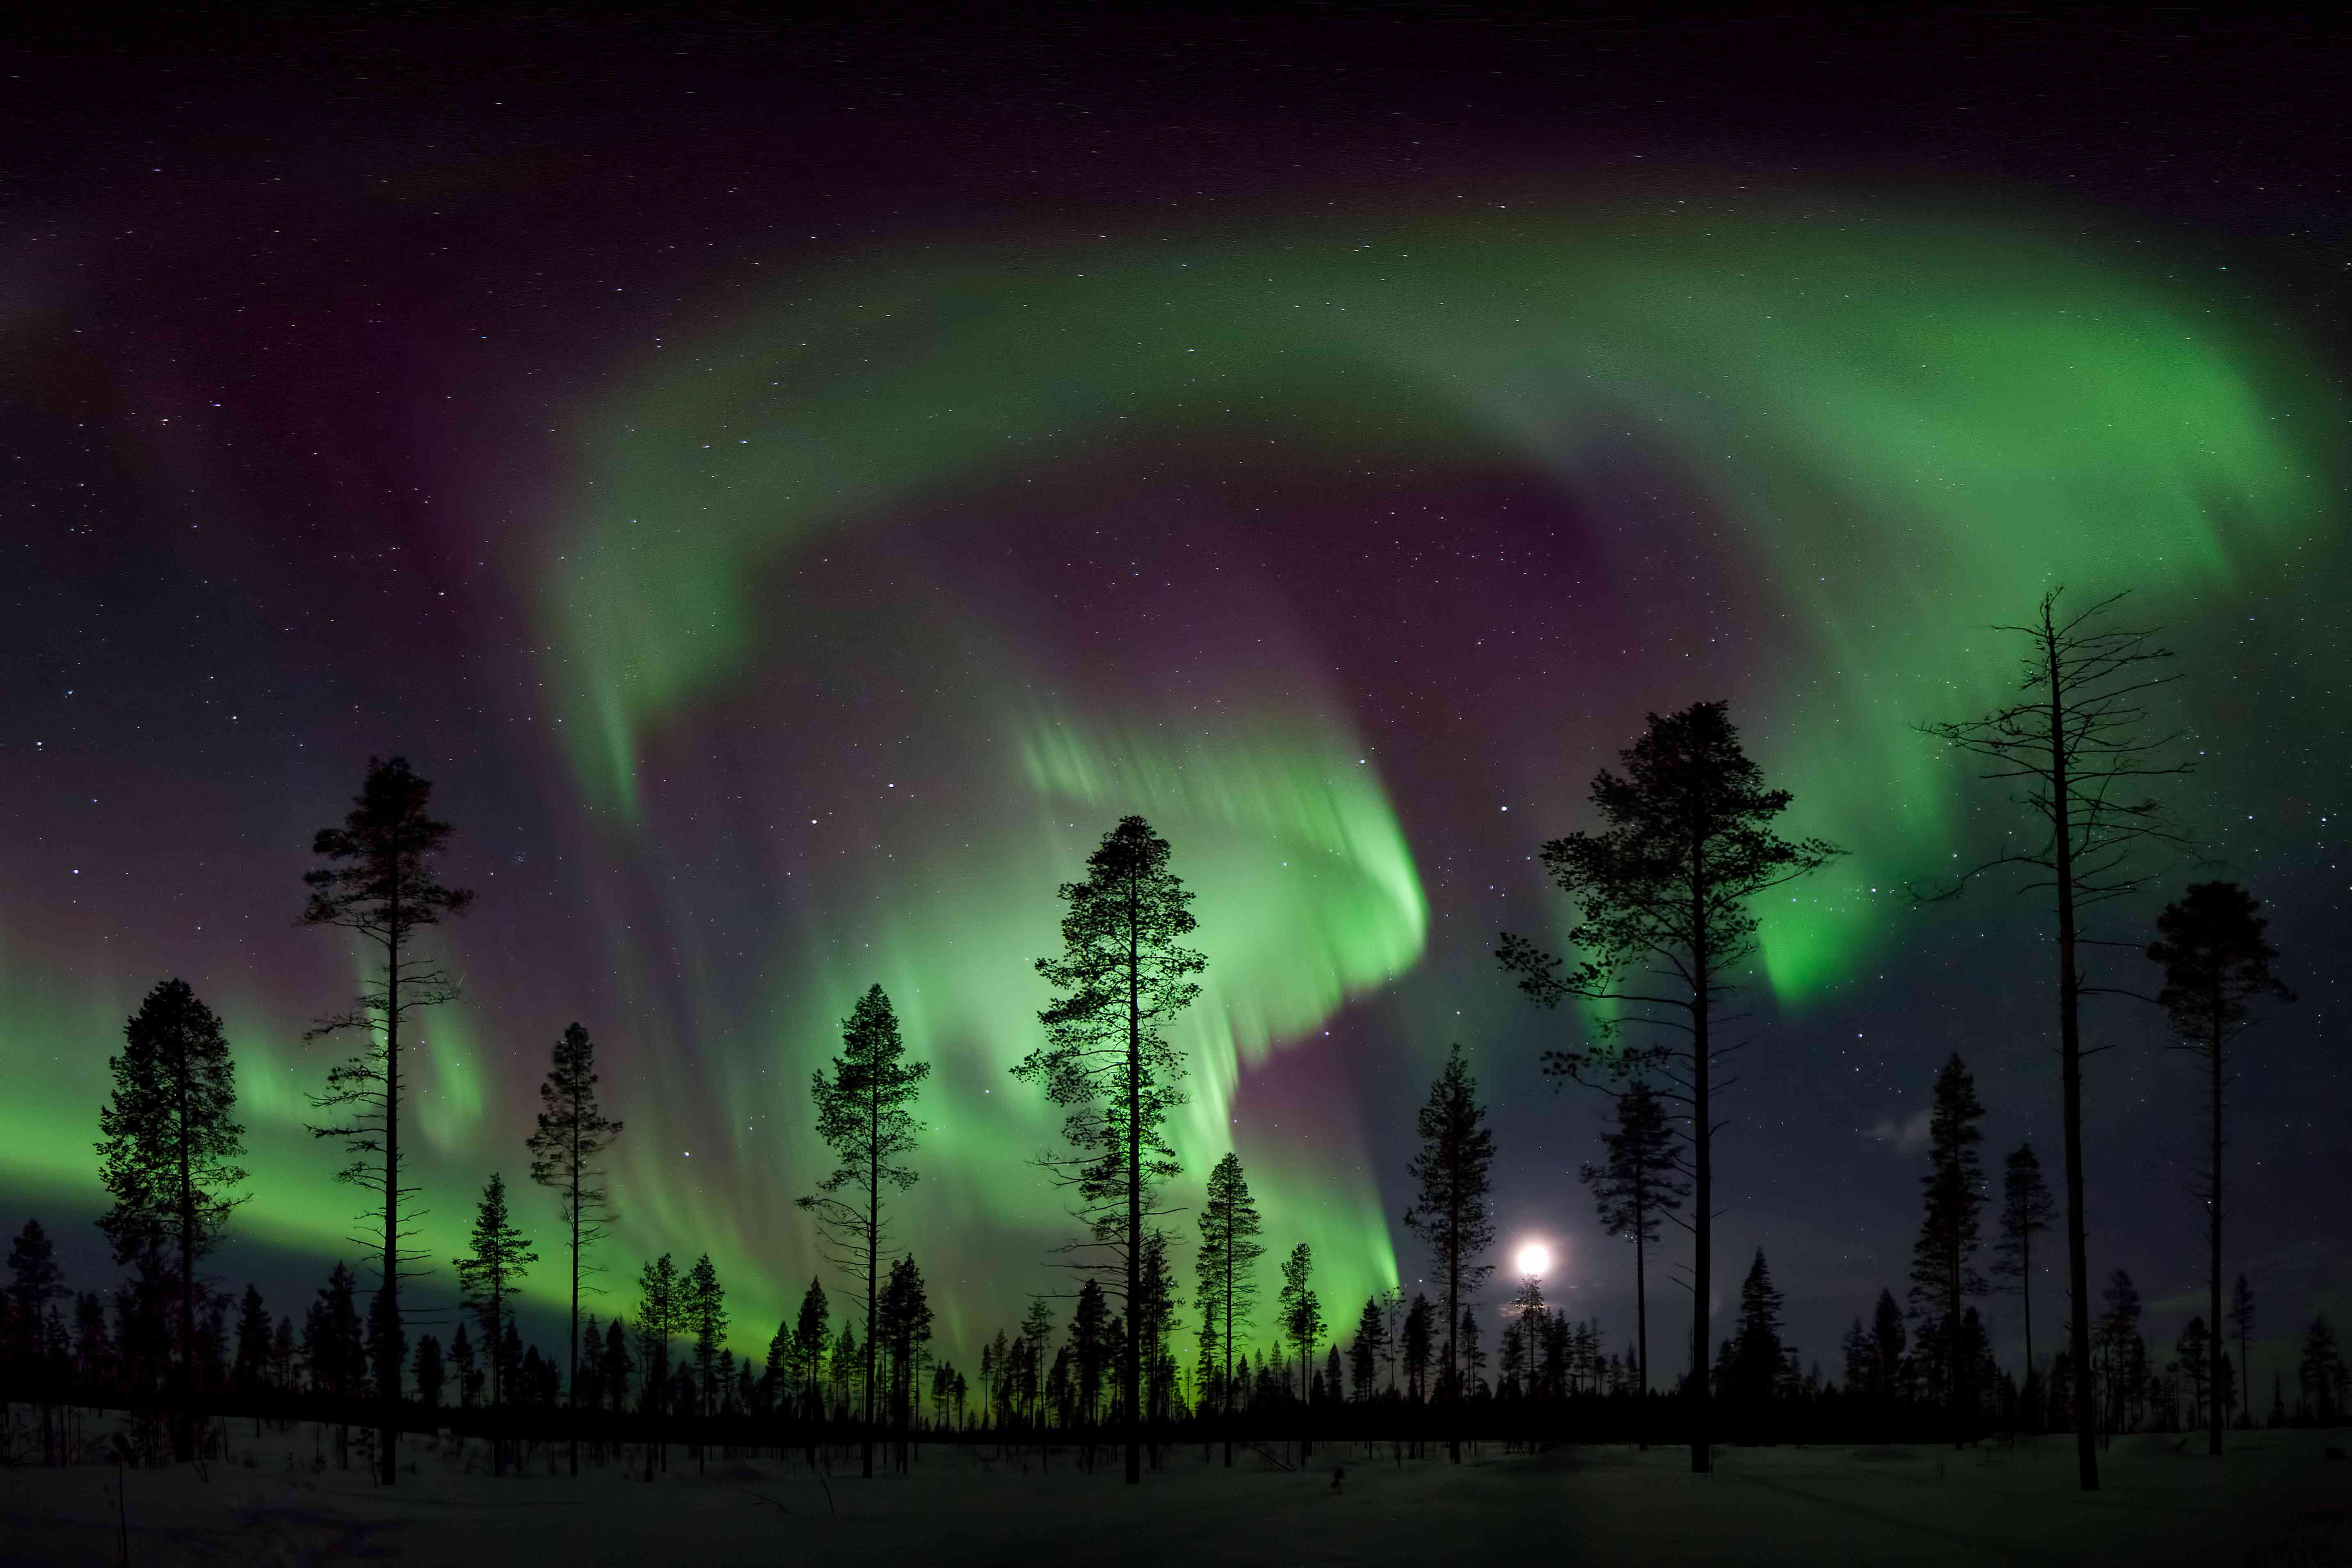 Northern Lights over a forest in Sweden